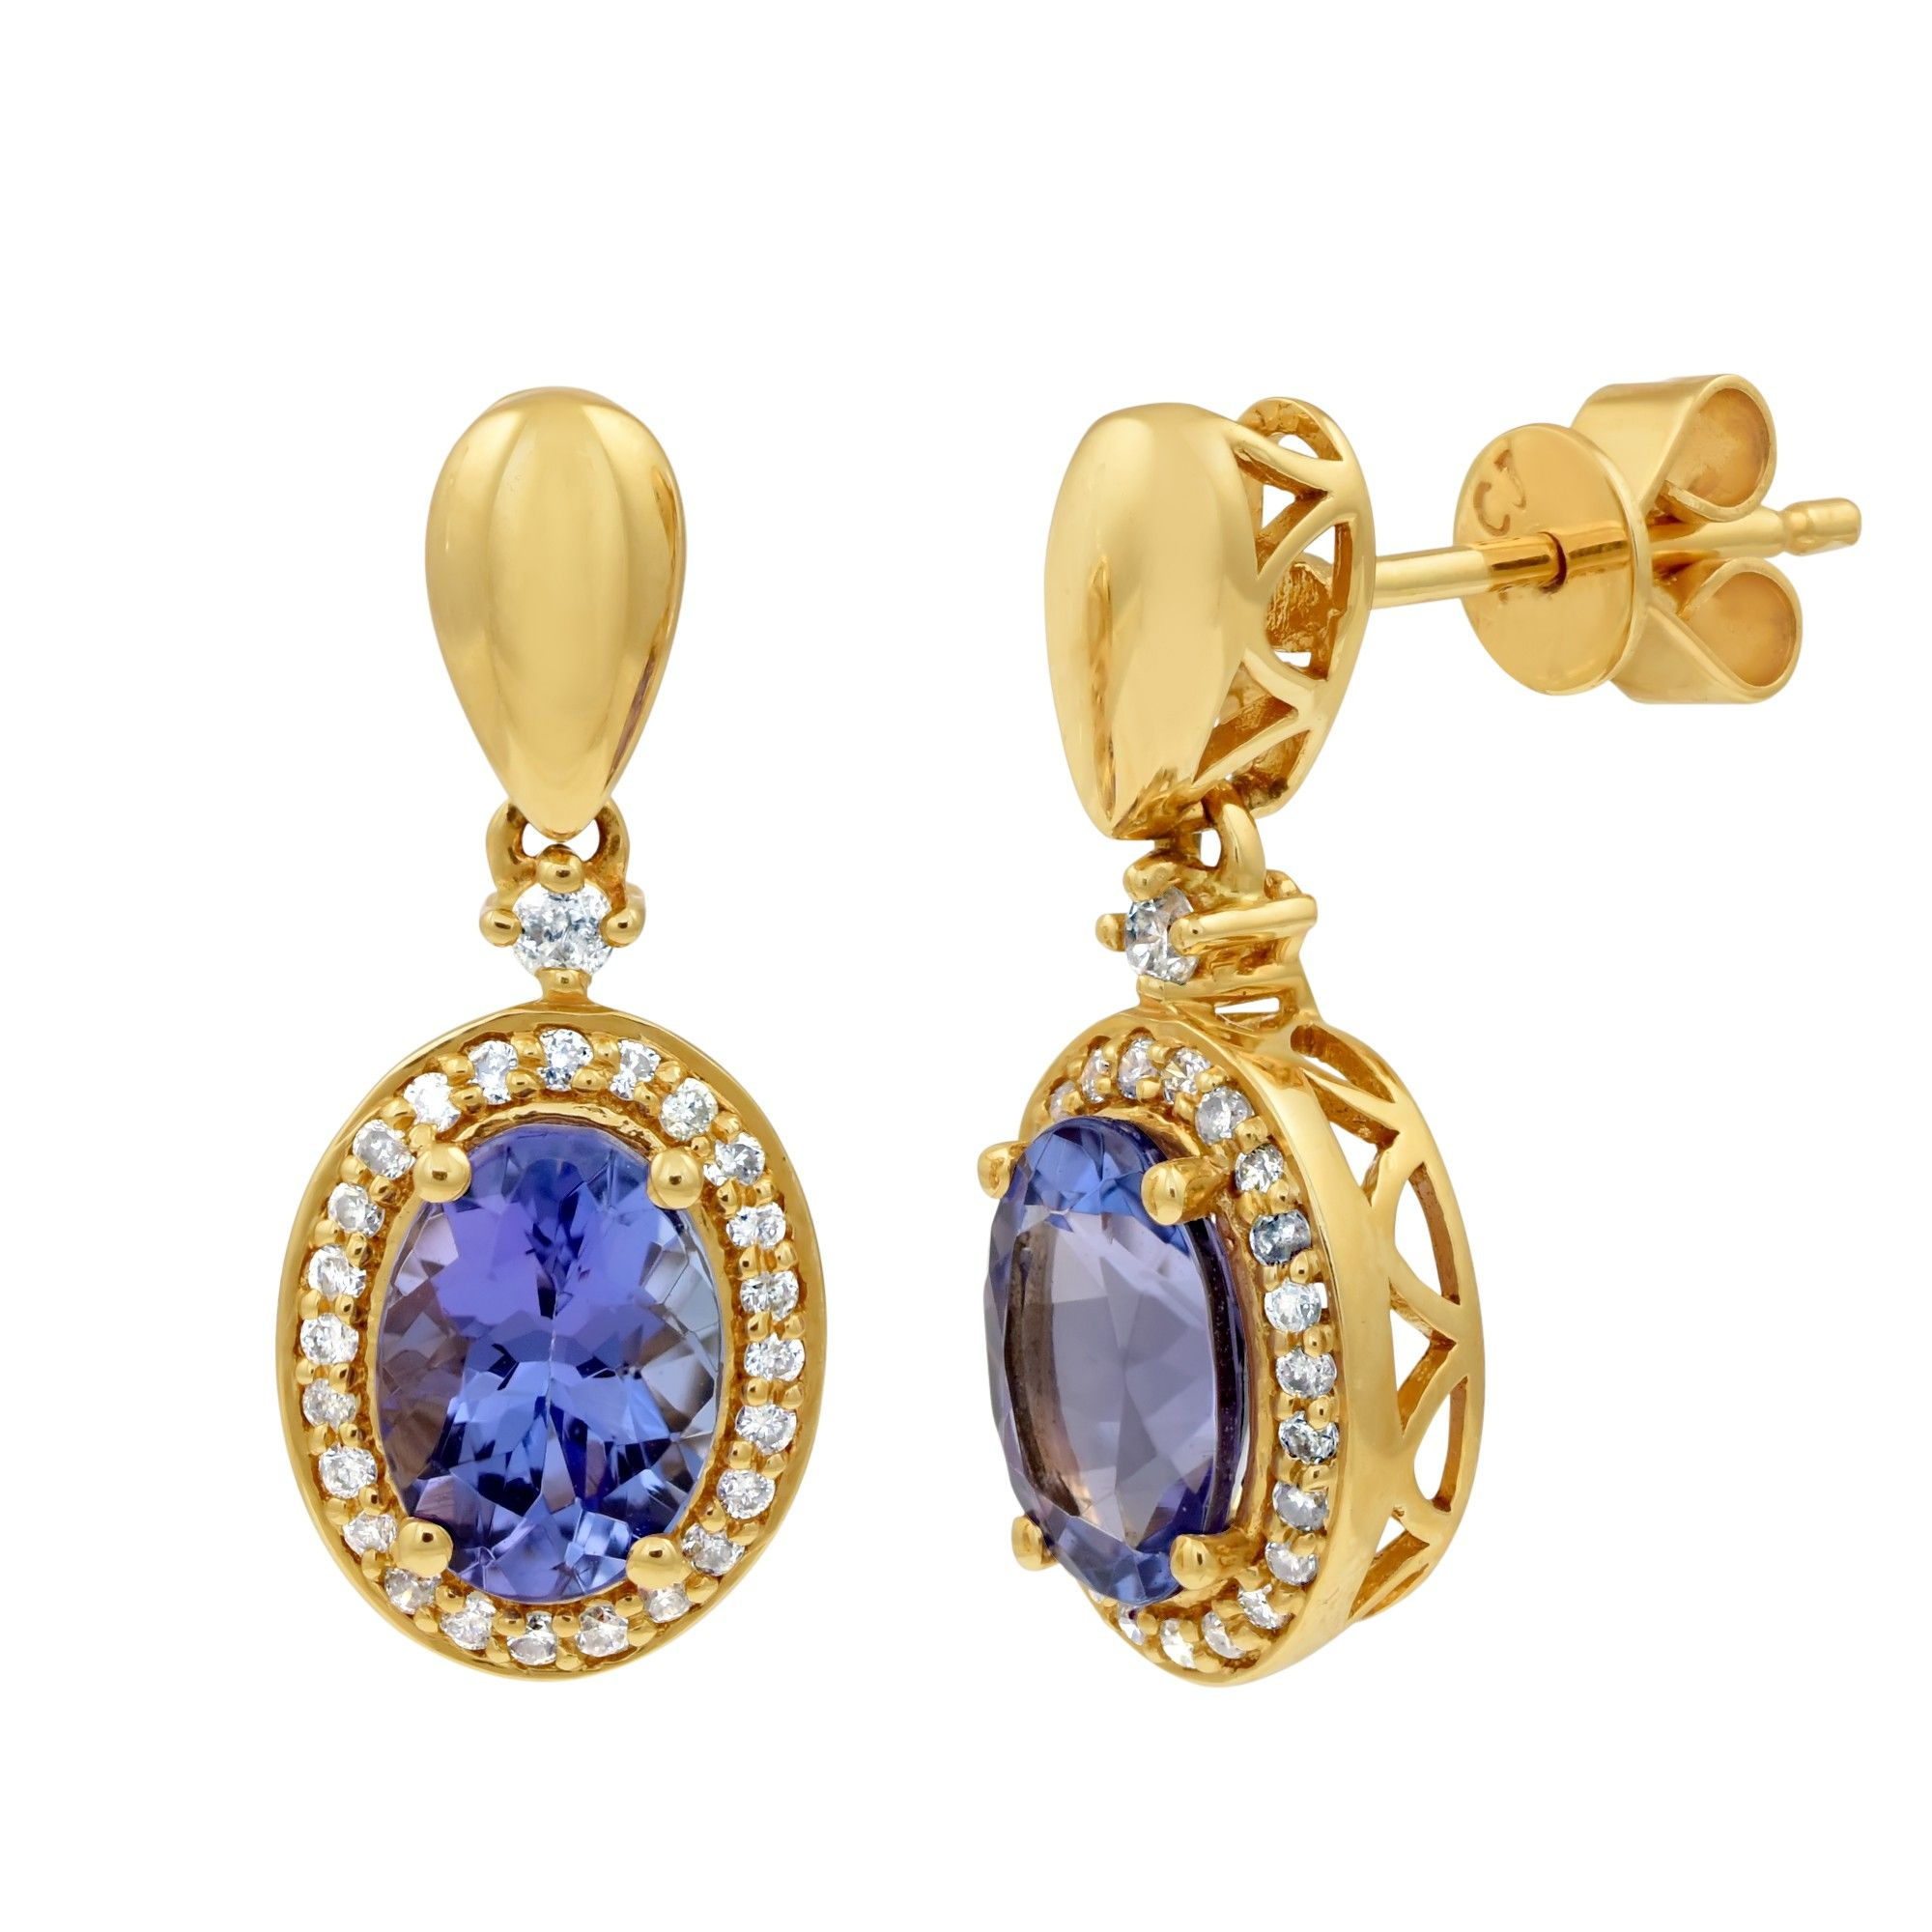 cei sidebar diamondtanzanite diamond rose addthis earrings gold sharing p tanzanite